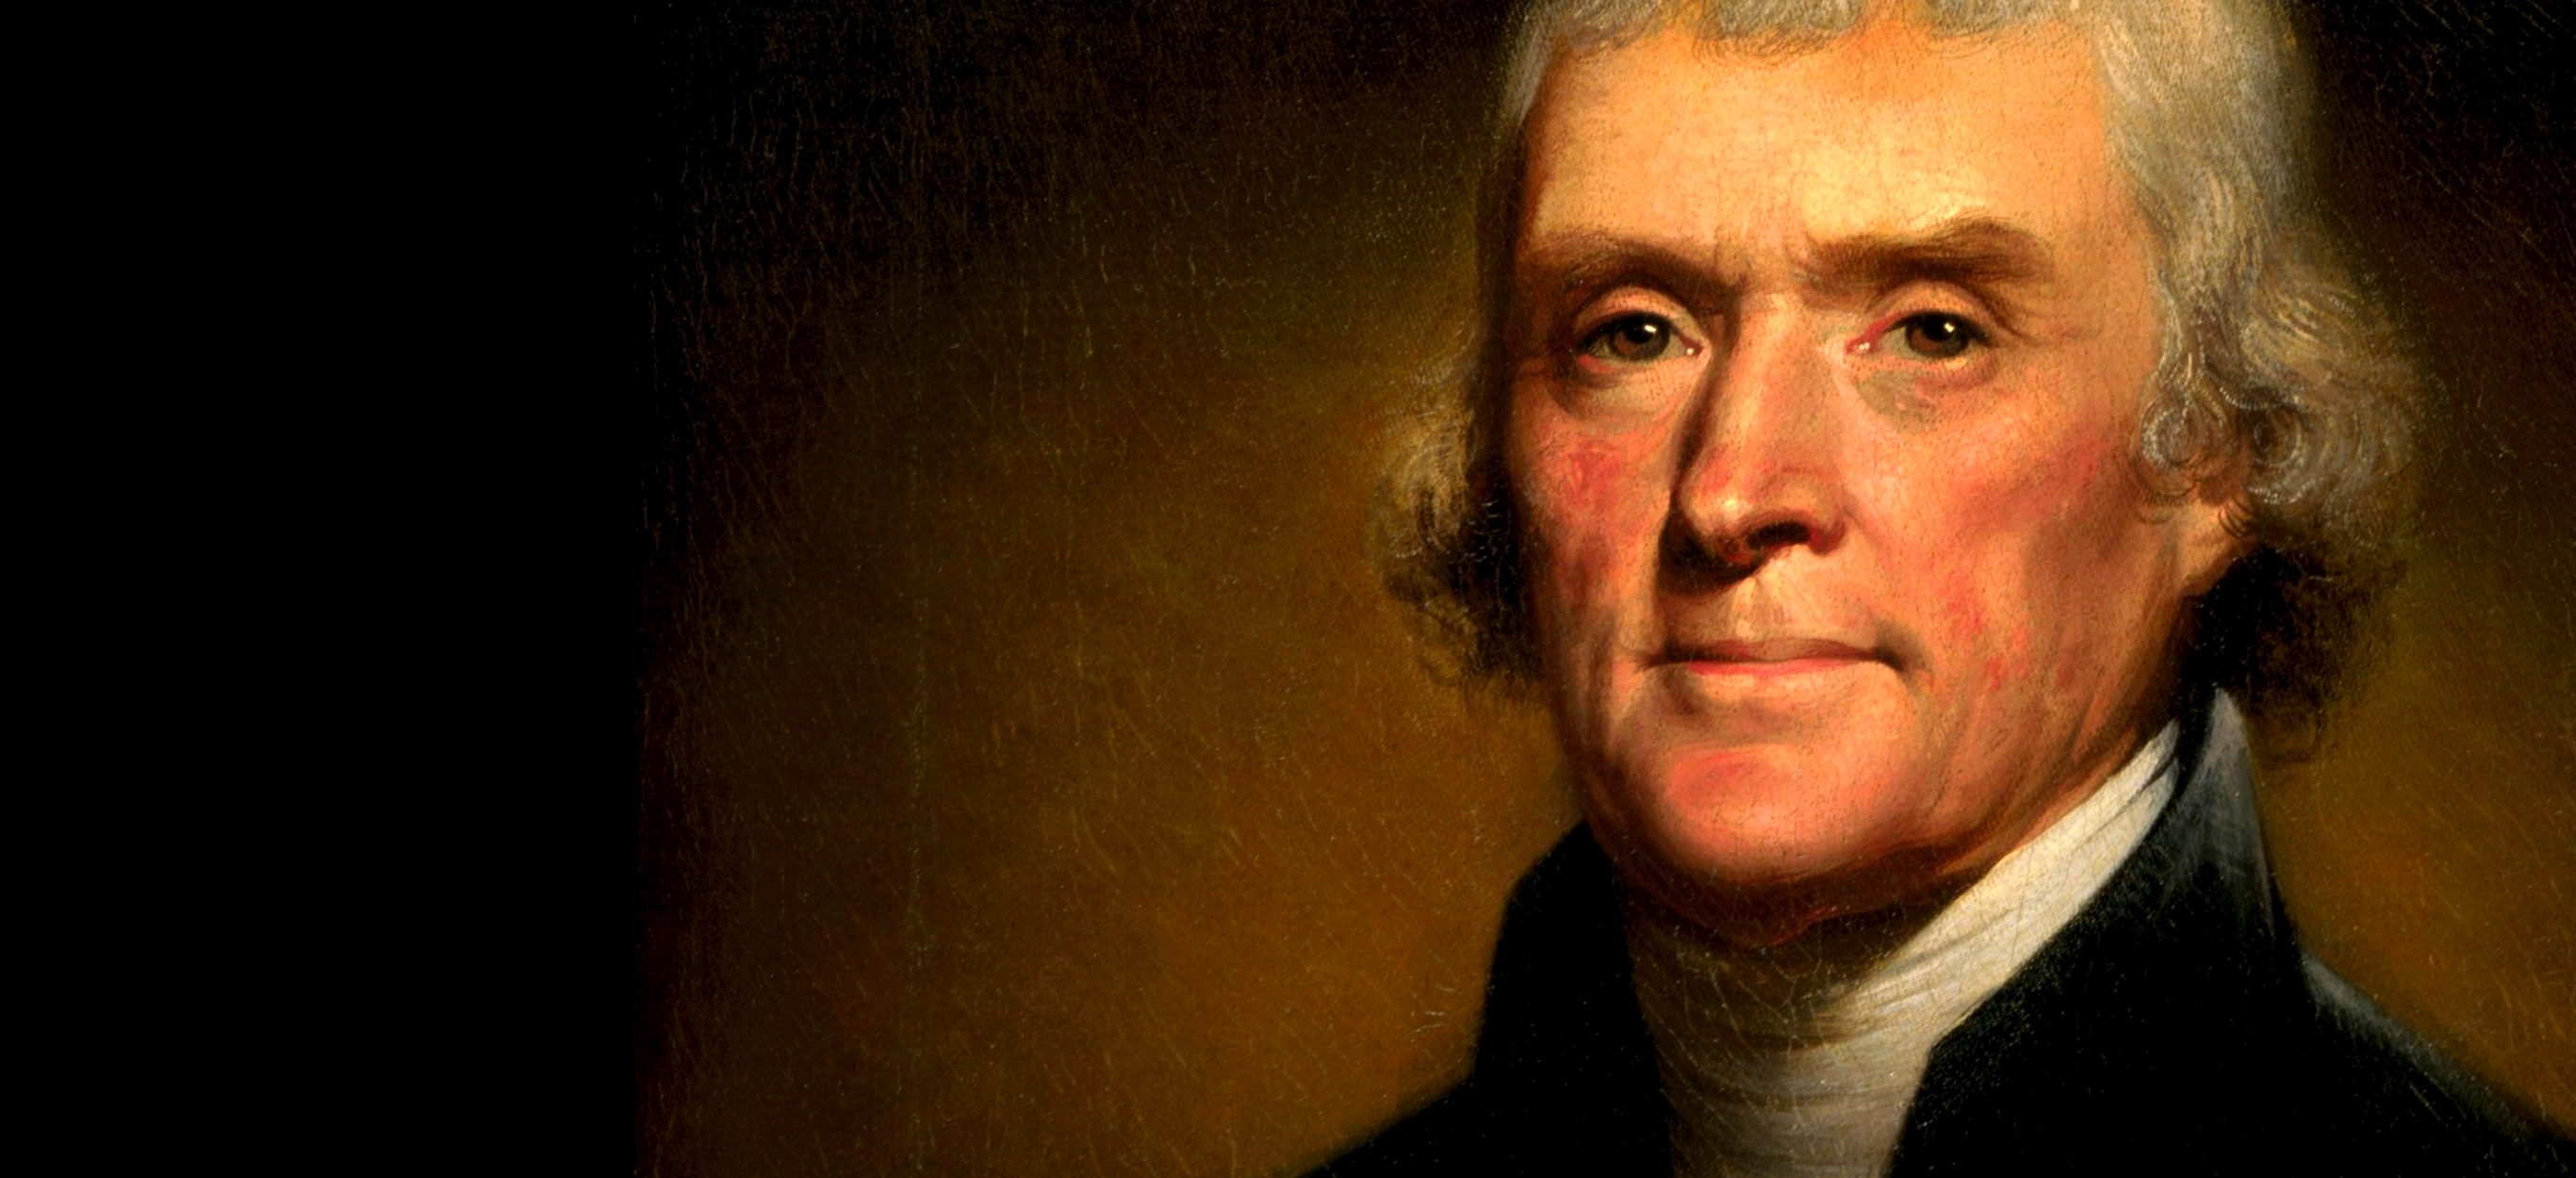 thomas jefferson critique Even supreme court justices now criticize the doctrine, not just their   dreisbach, daniel l thomas jefferson and the wall of separation of church and  state.